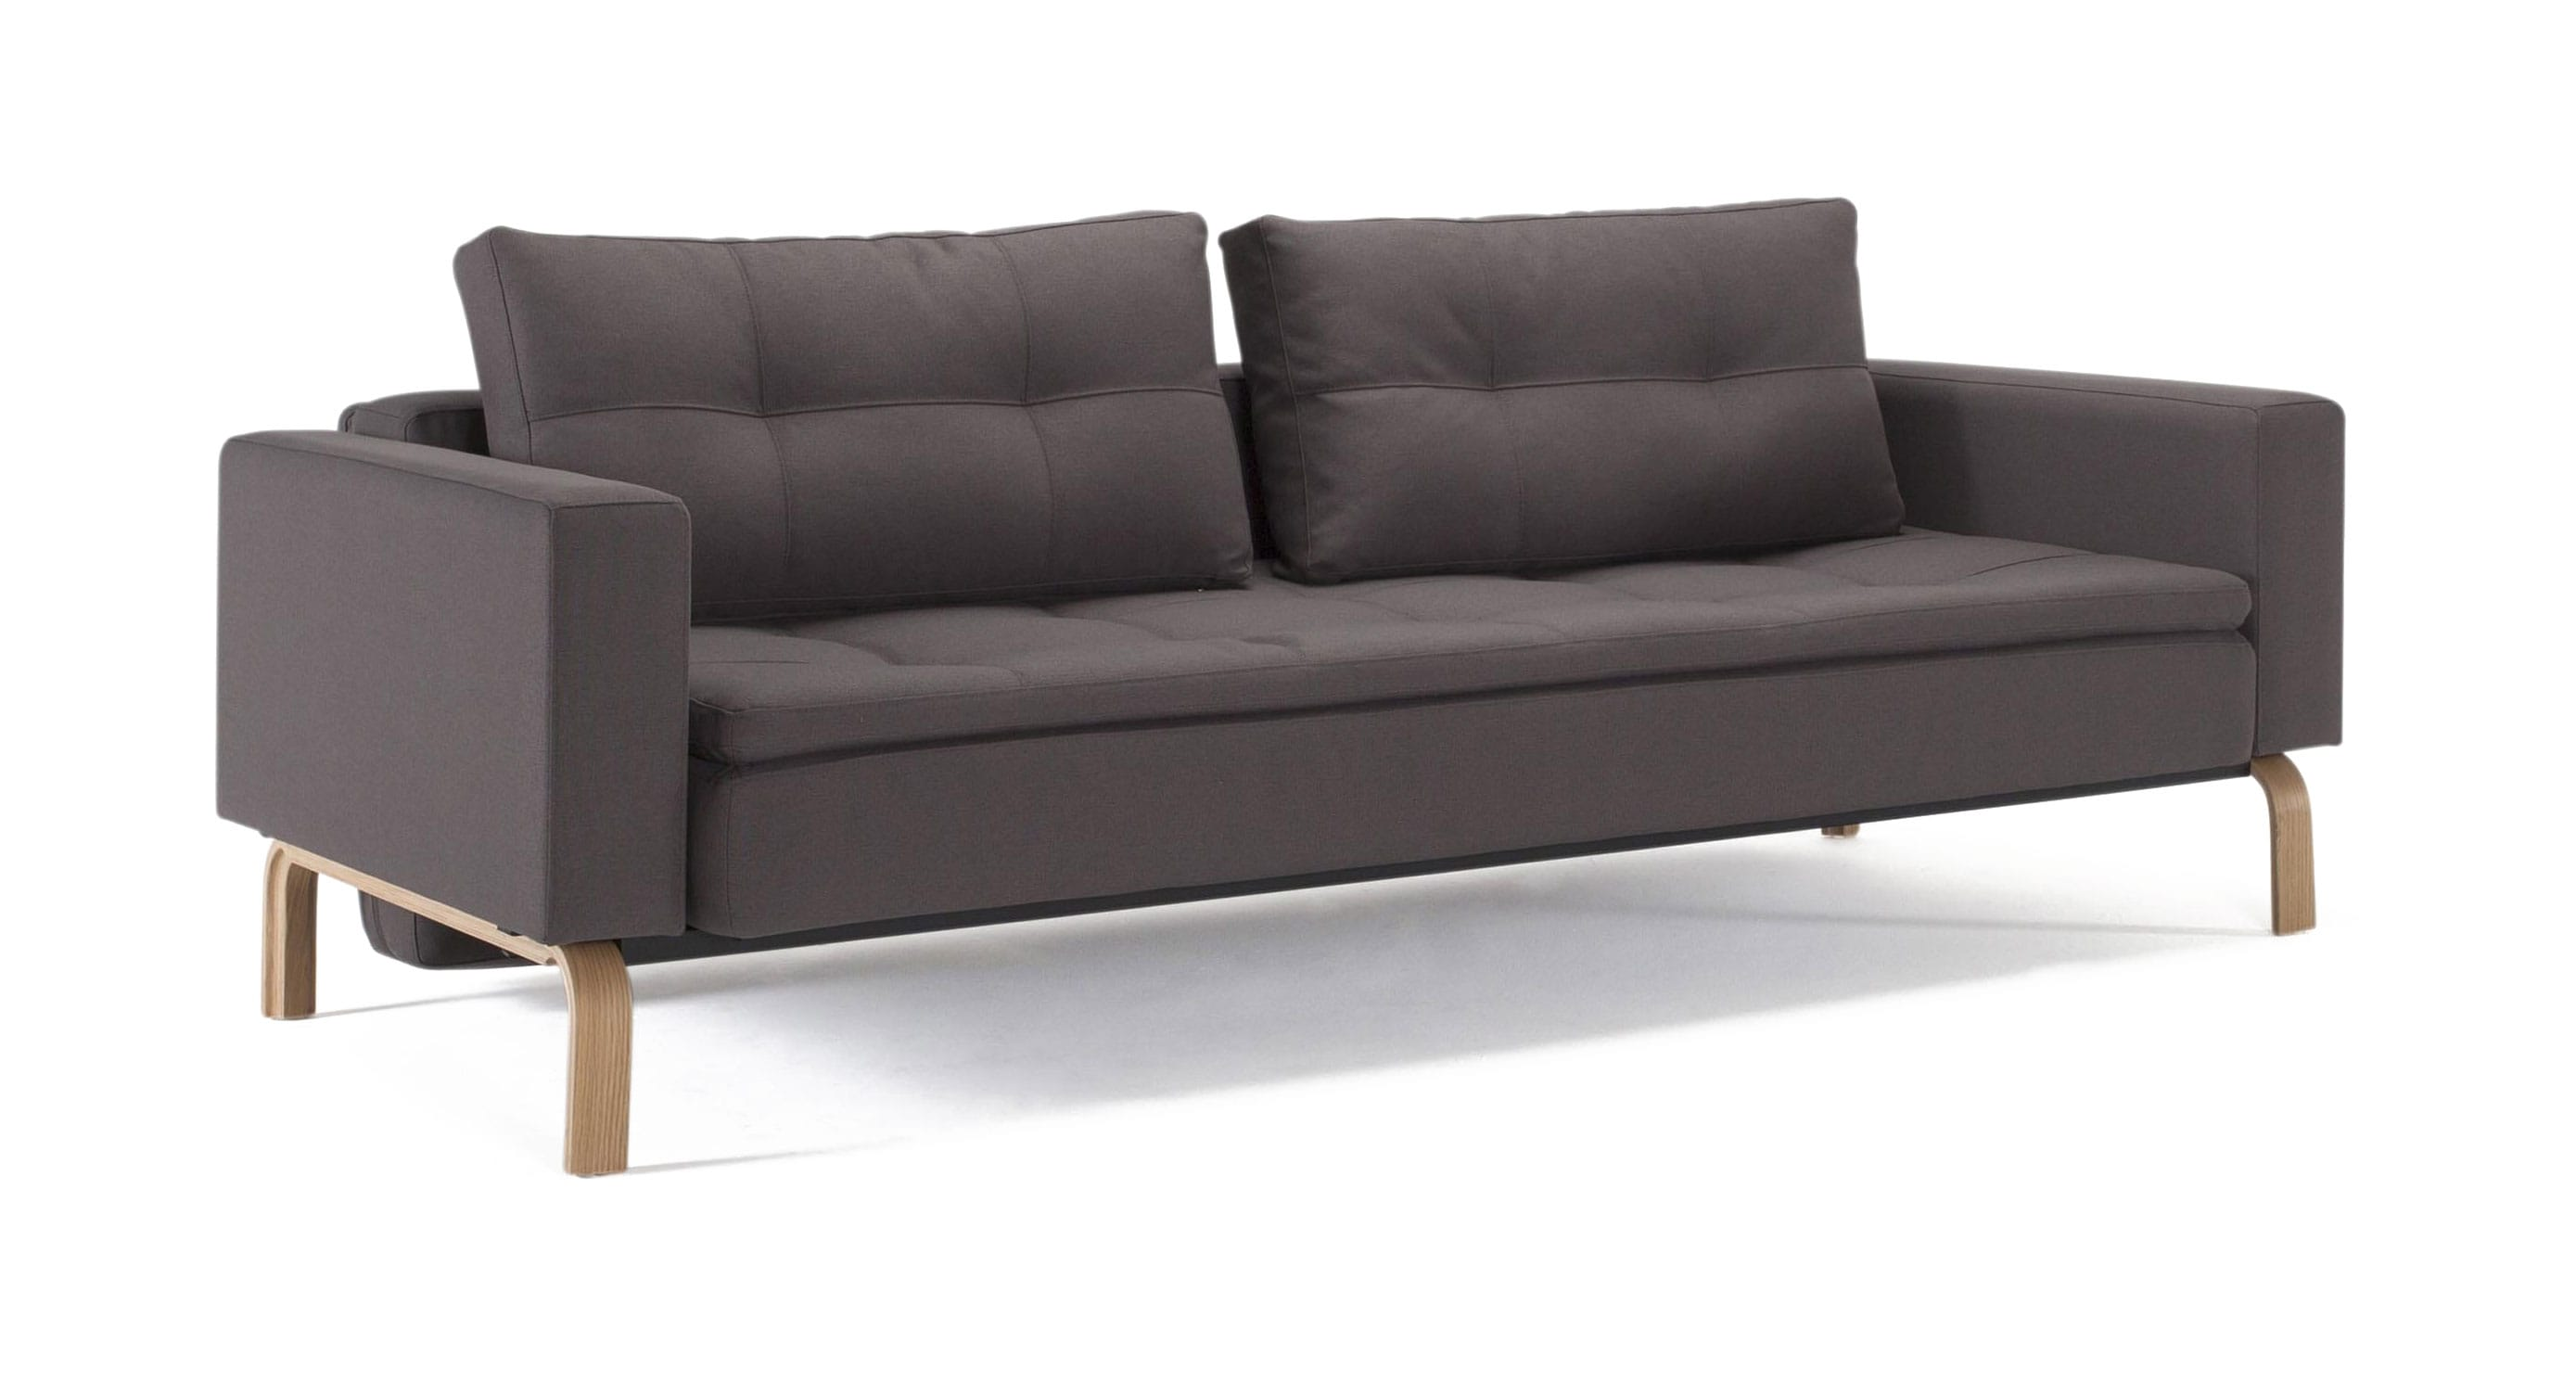 Cassius Dual Sofa Bed w/Arms (Full Size) Soft Gray by Innovation